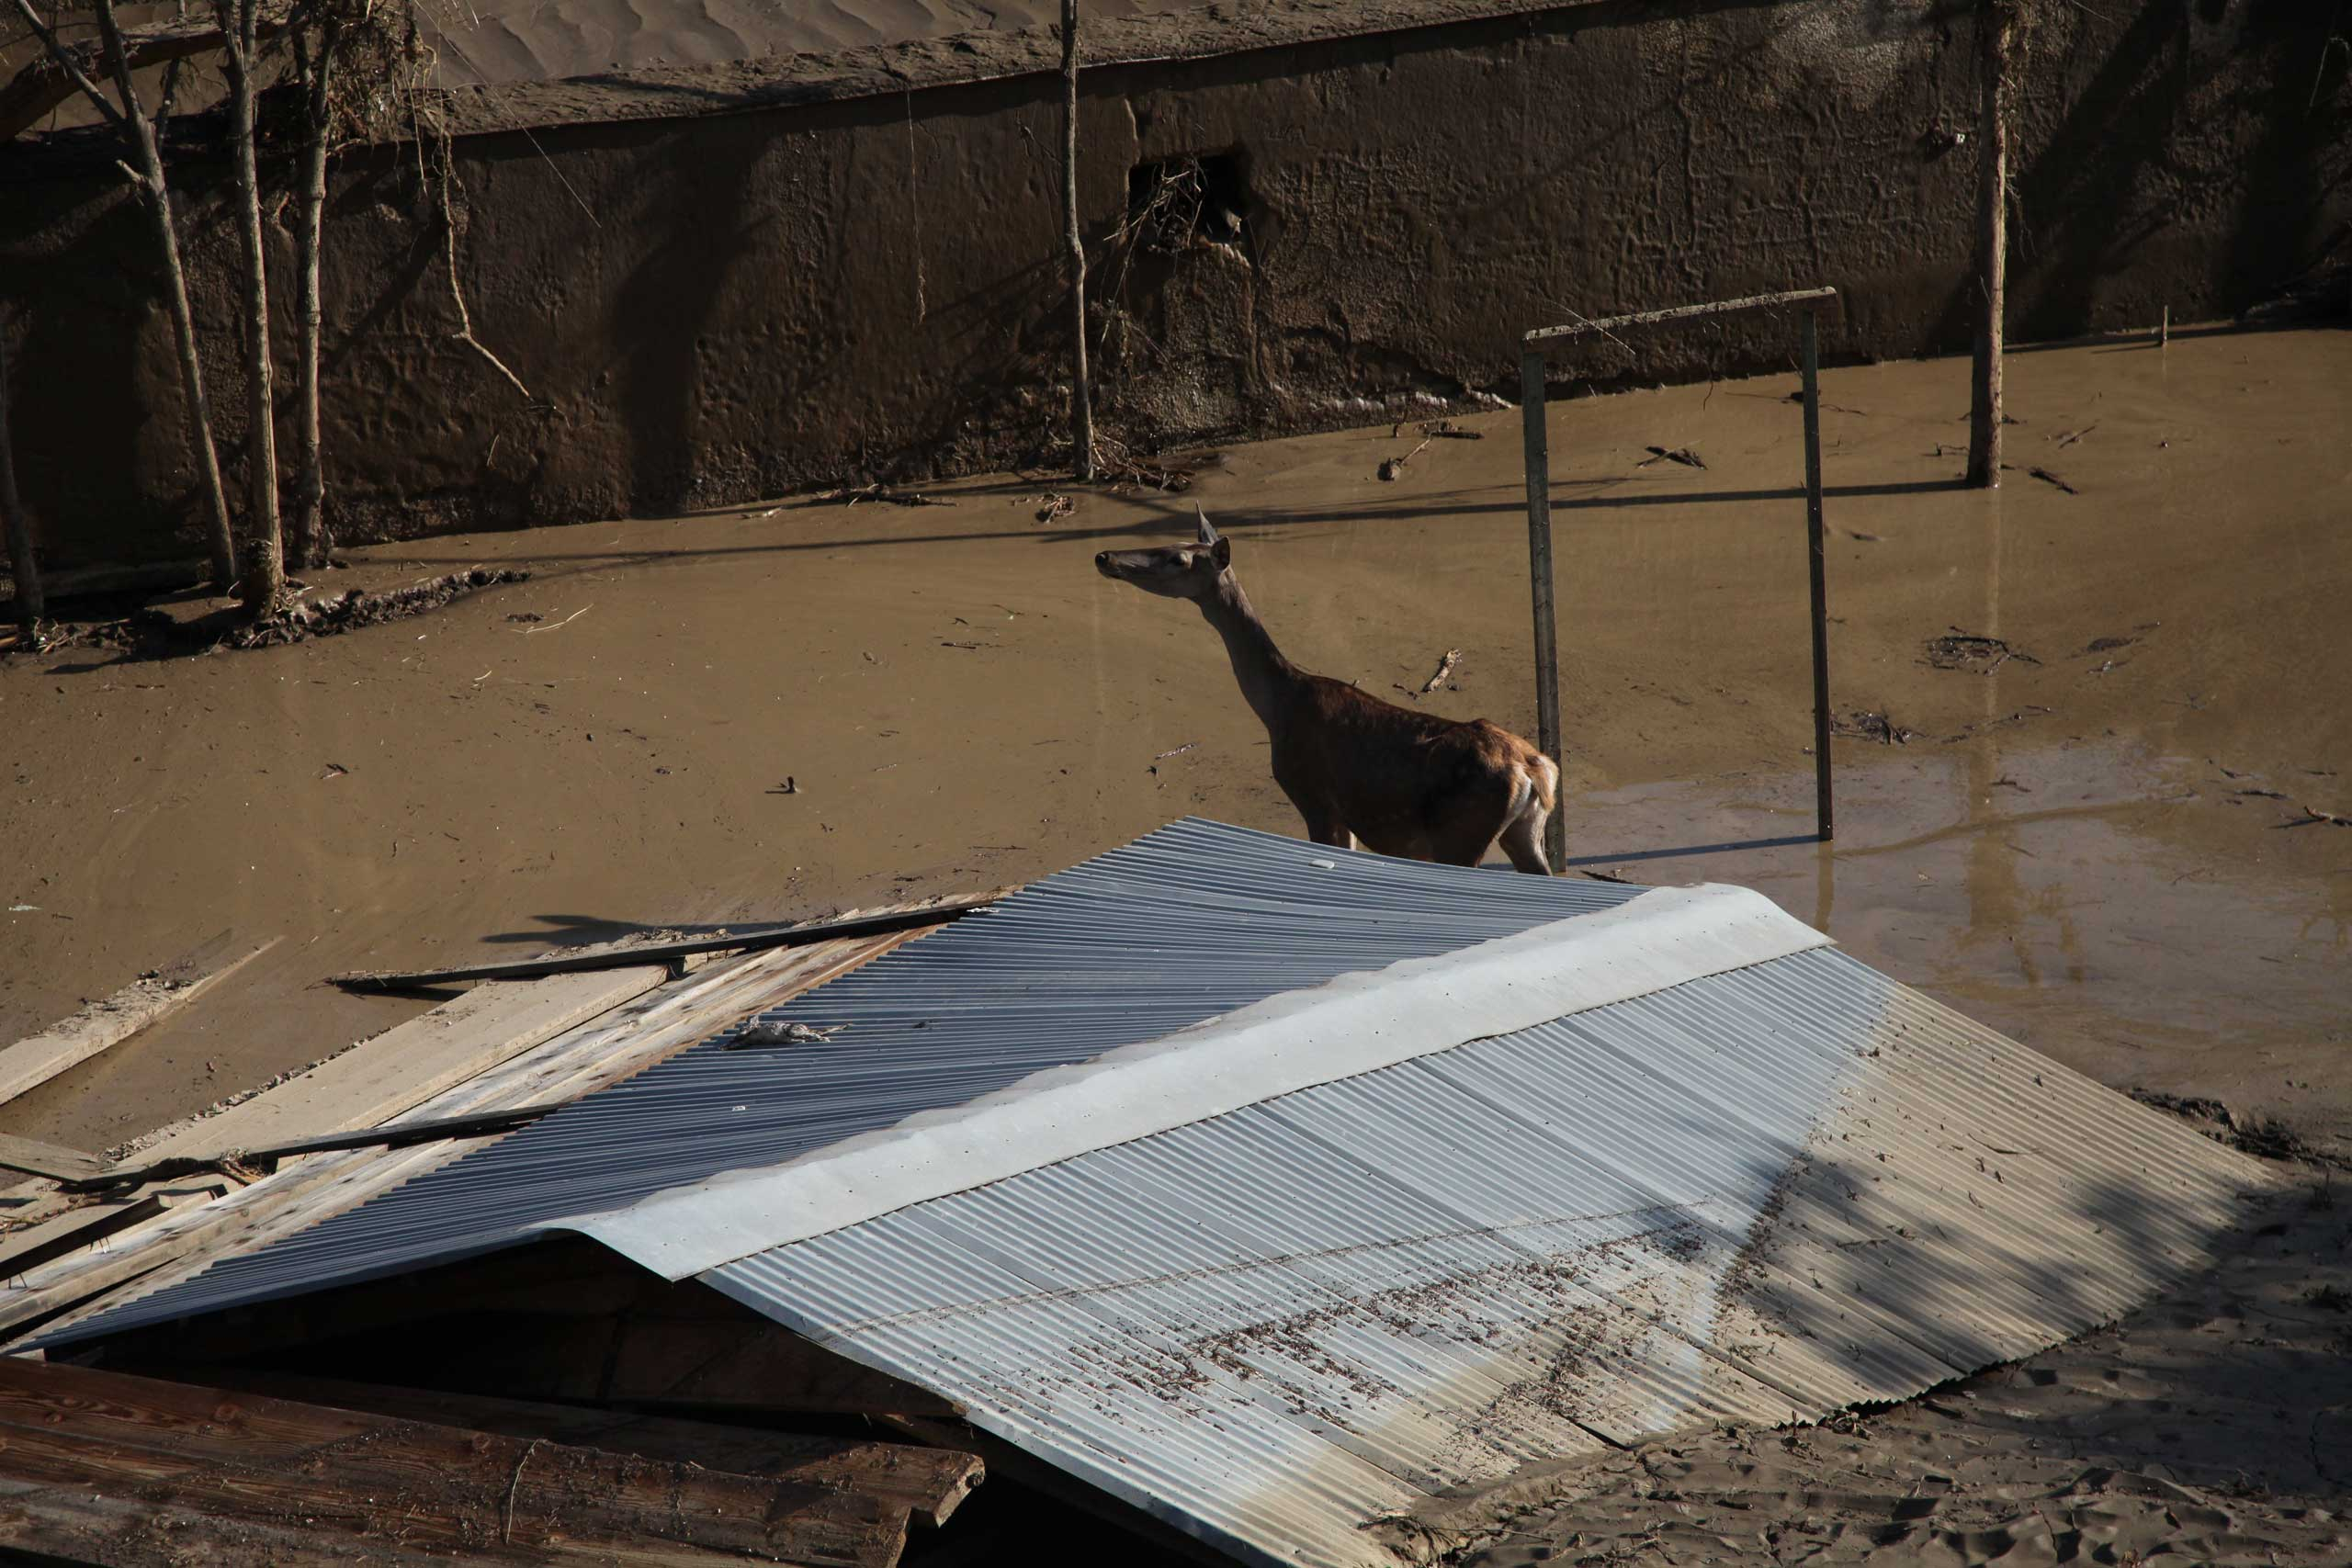 An animal escaped from a flooded zoo stands in mud in Tbilisi, Georgia on June 14, 2015.